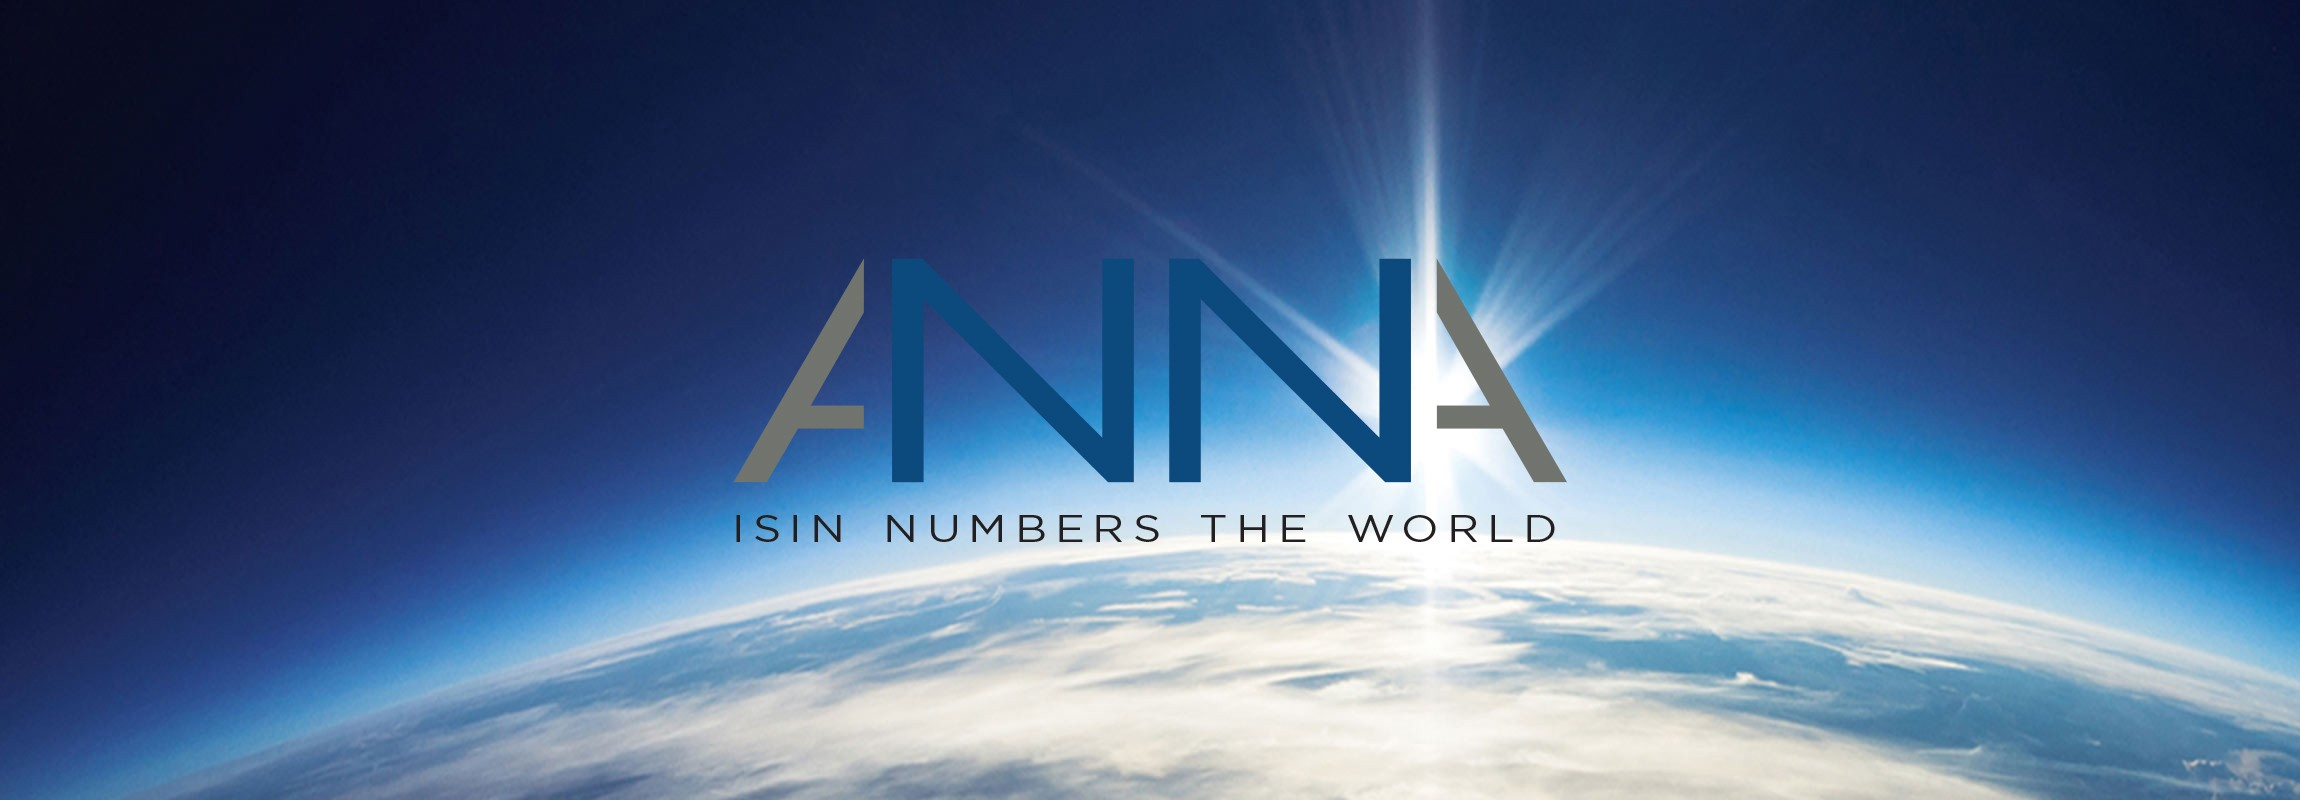 All About Anna Español anna - association of national numbering agencies mission